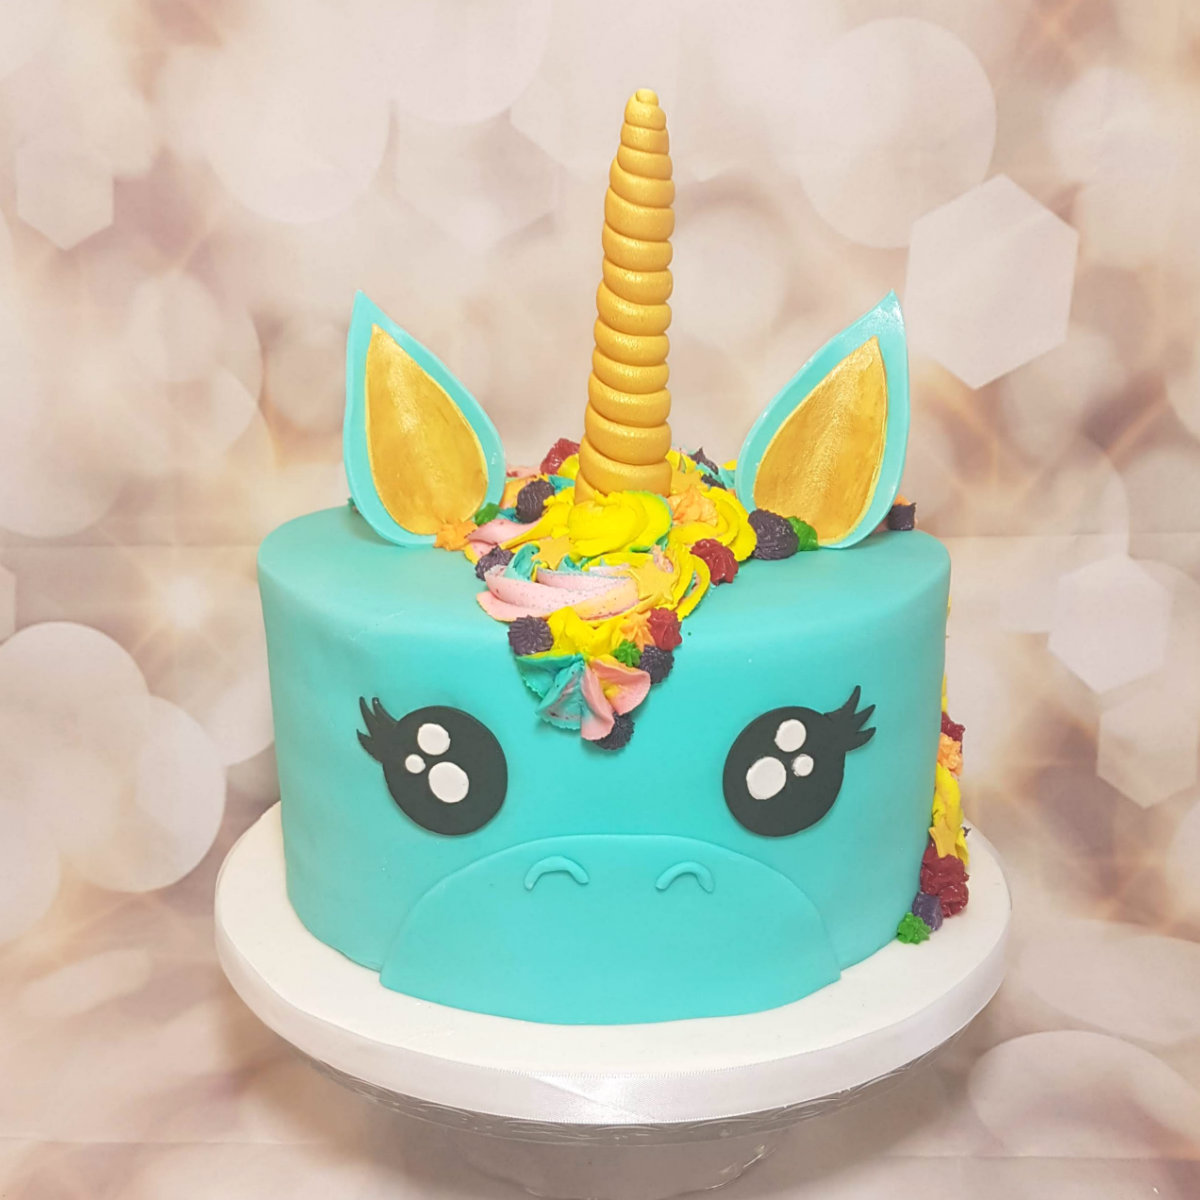 Tiffany blue unicorn head cake - Quality Cake Company Tamworth